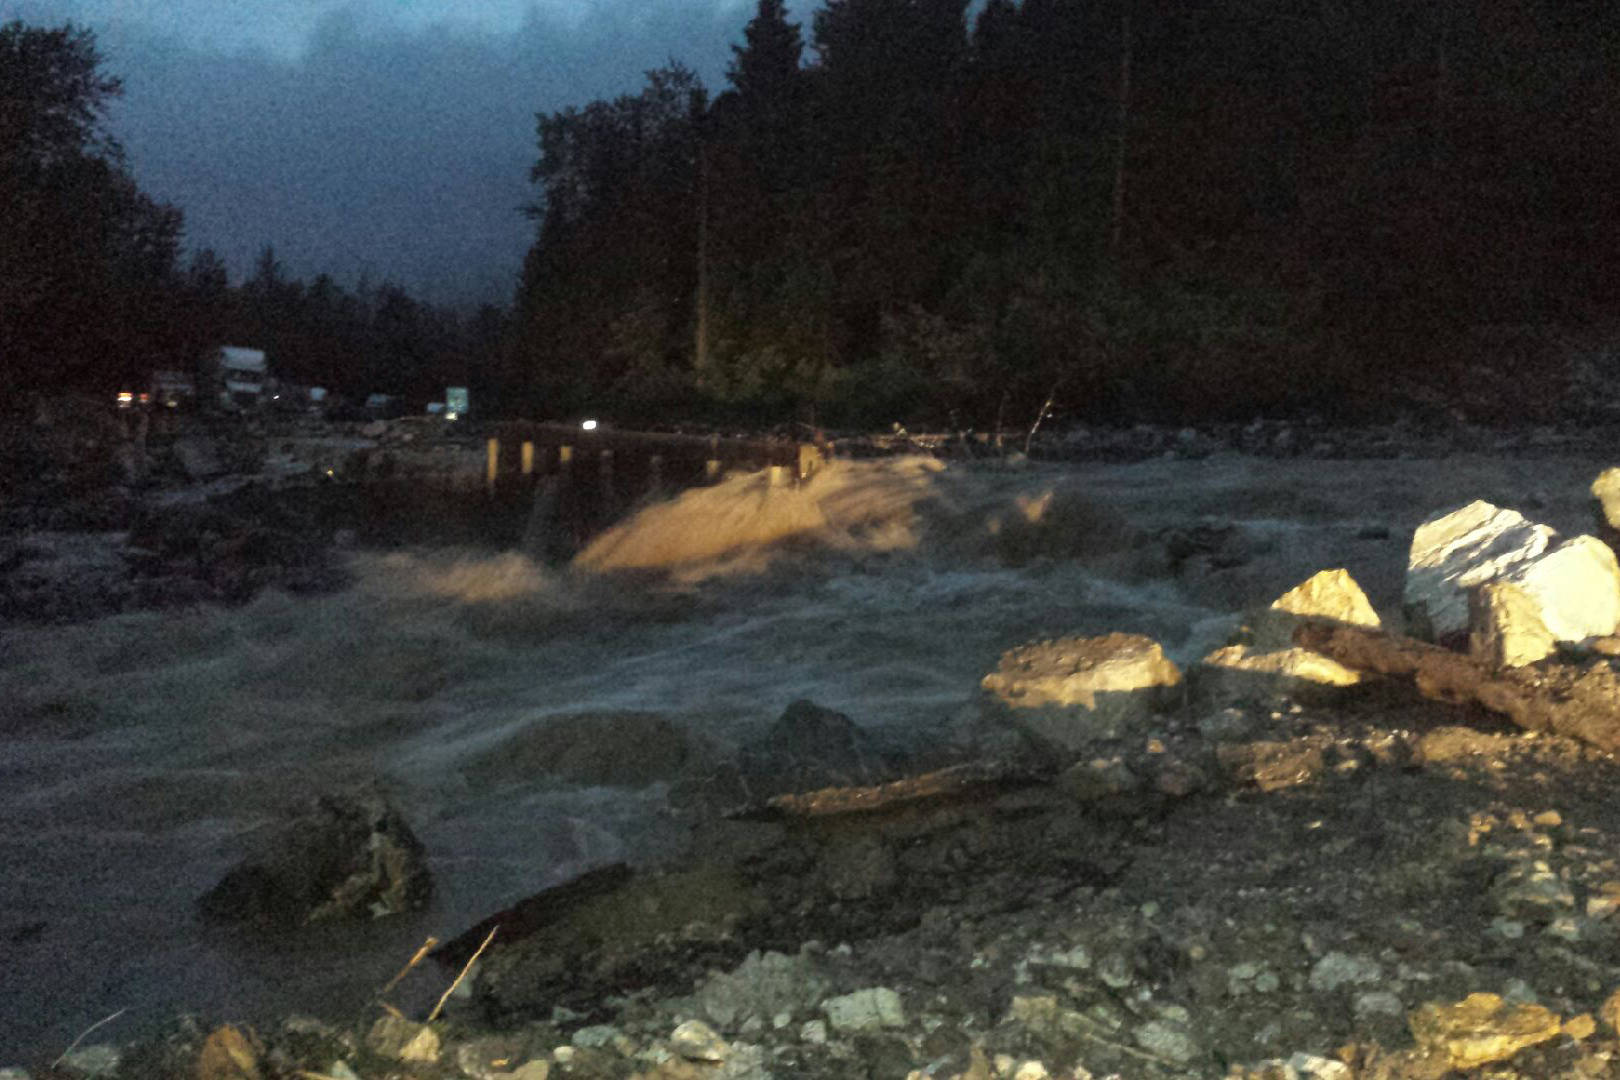 UPDATE: Trans-Canada Highway open from Revelstoke to Sicamous after washout